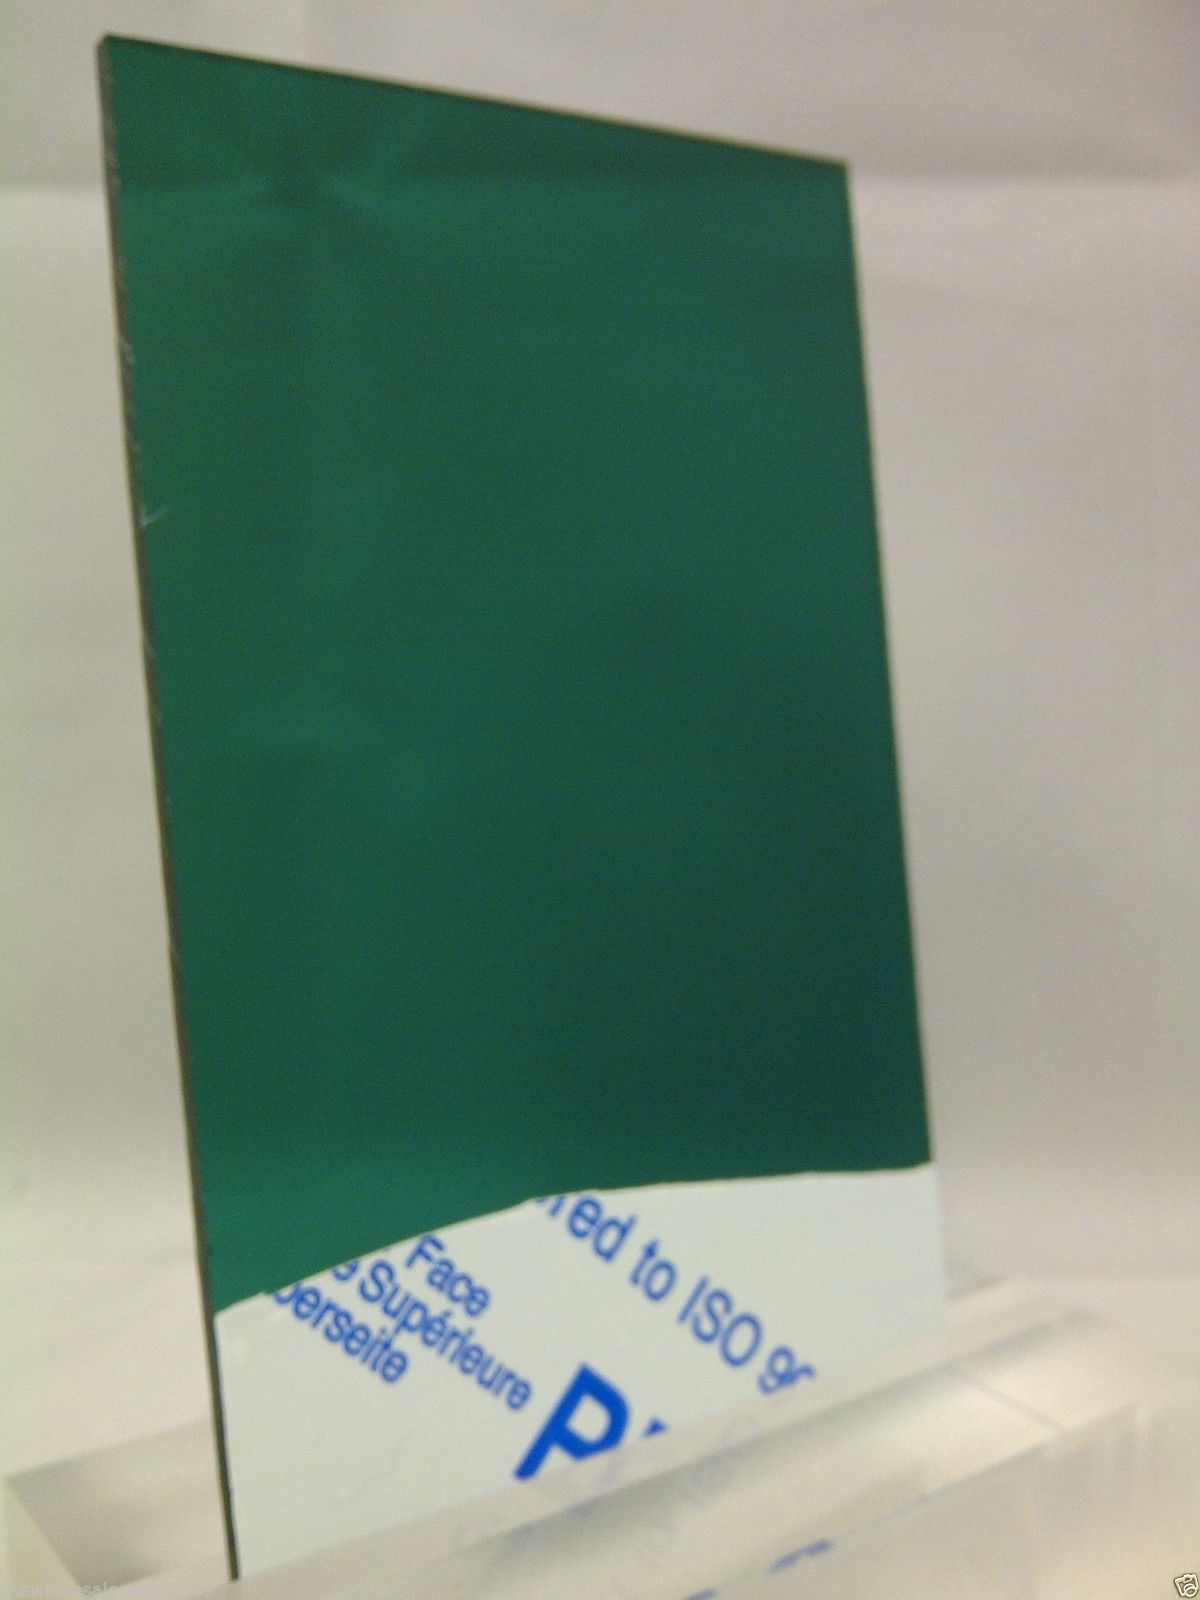 Perspex Acrylic Sheet Tinted Green 6600 Cast 3mm A4 Translucent Panel Material Perspex Sheet Acrylic Sheets Colour Tint